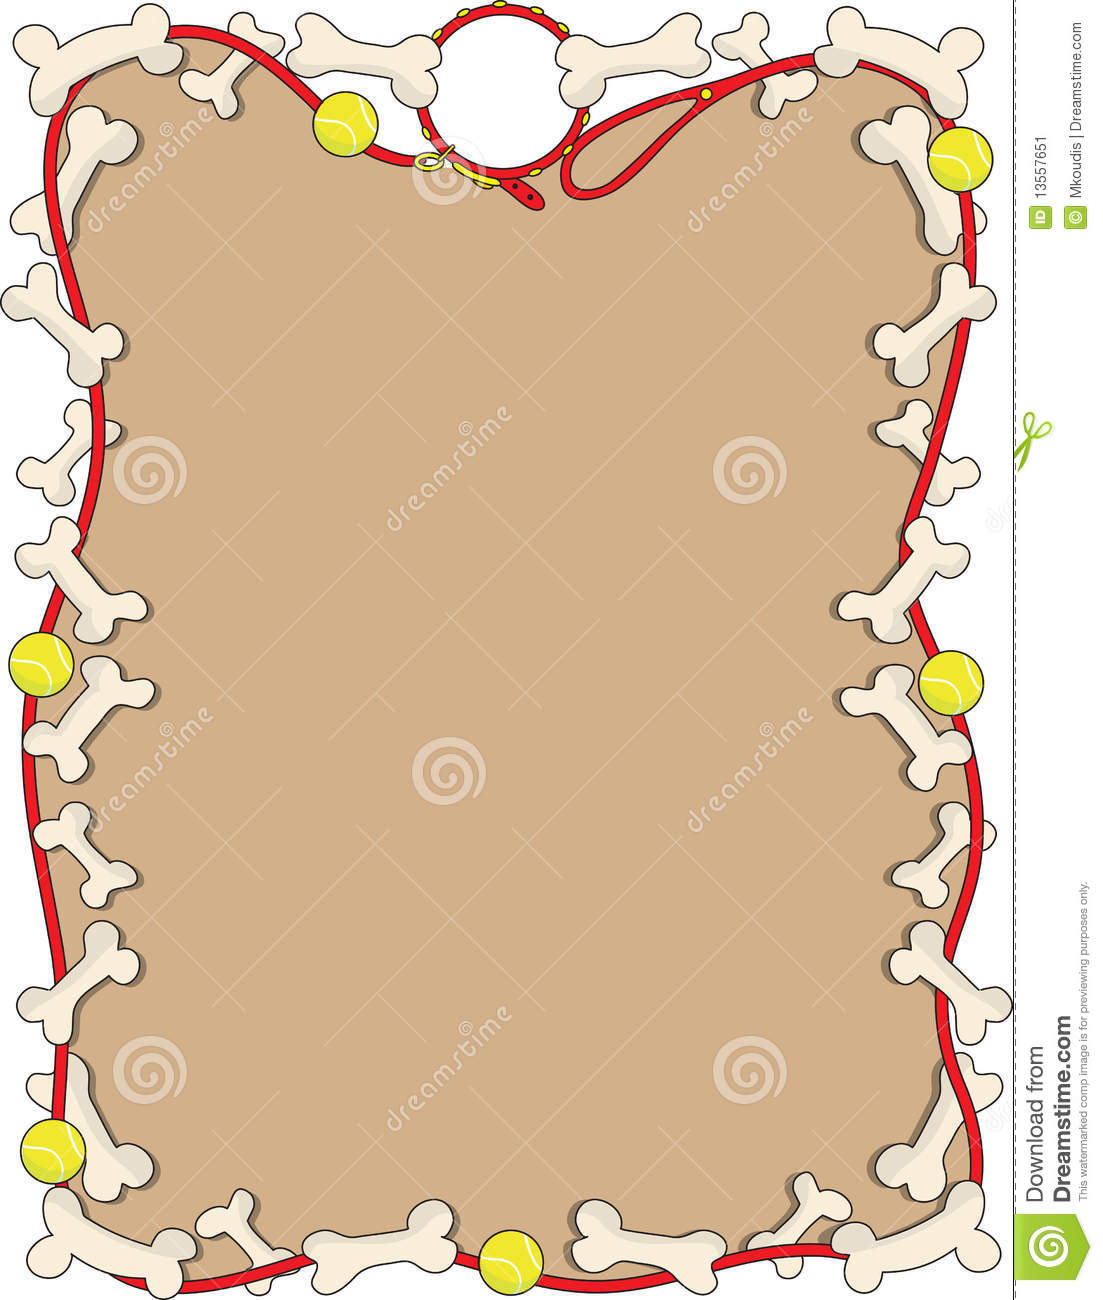 Dog Bone Border Clipart Dog bone border